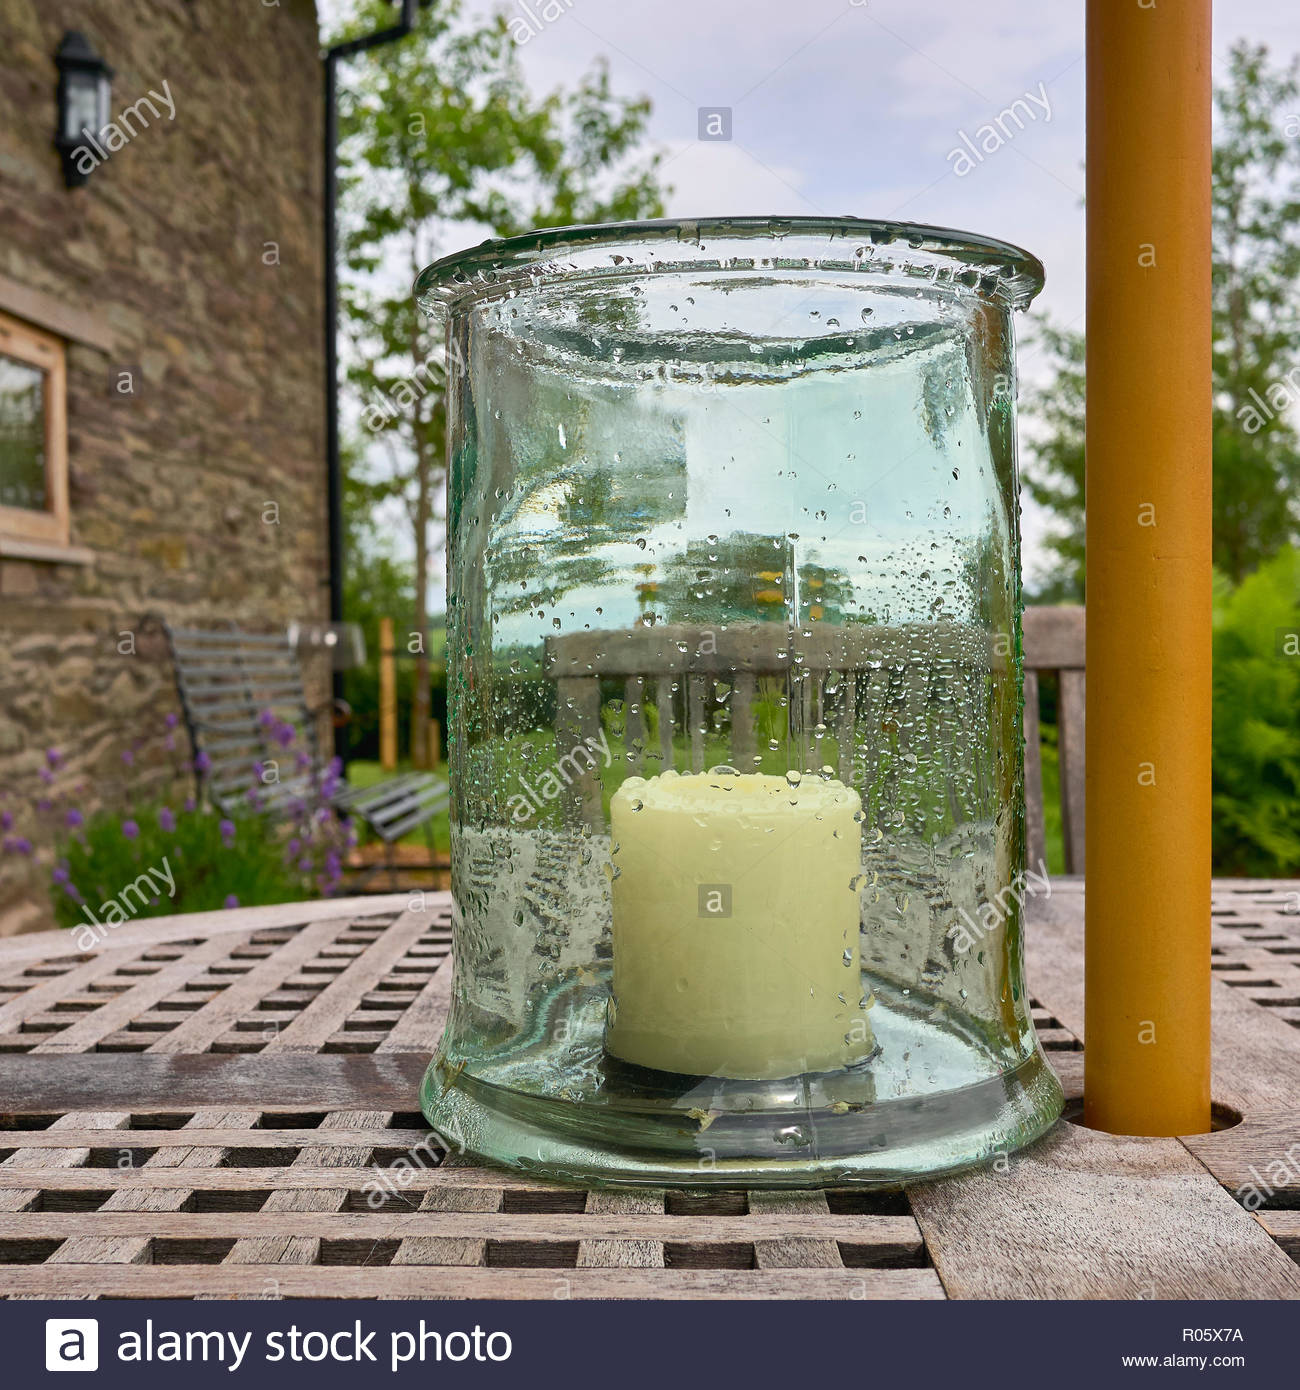 a large white unlit candle inside a glass jar covered with rain drops on a wooden patio outside in a british uk garden Stock Photo